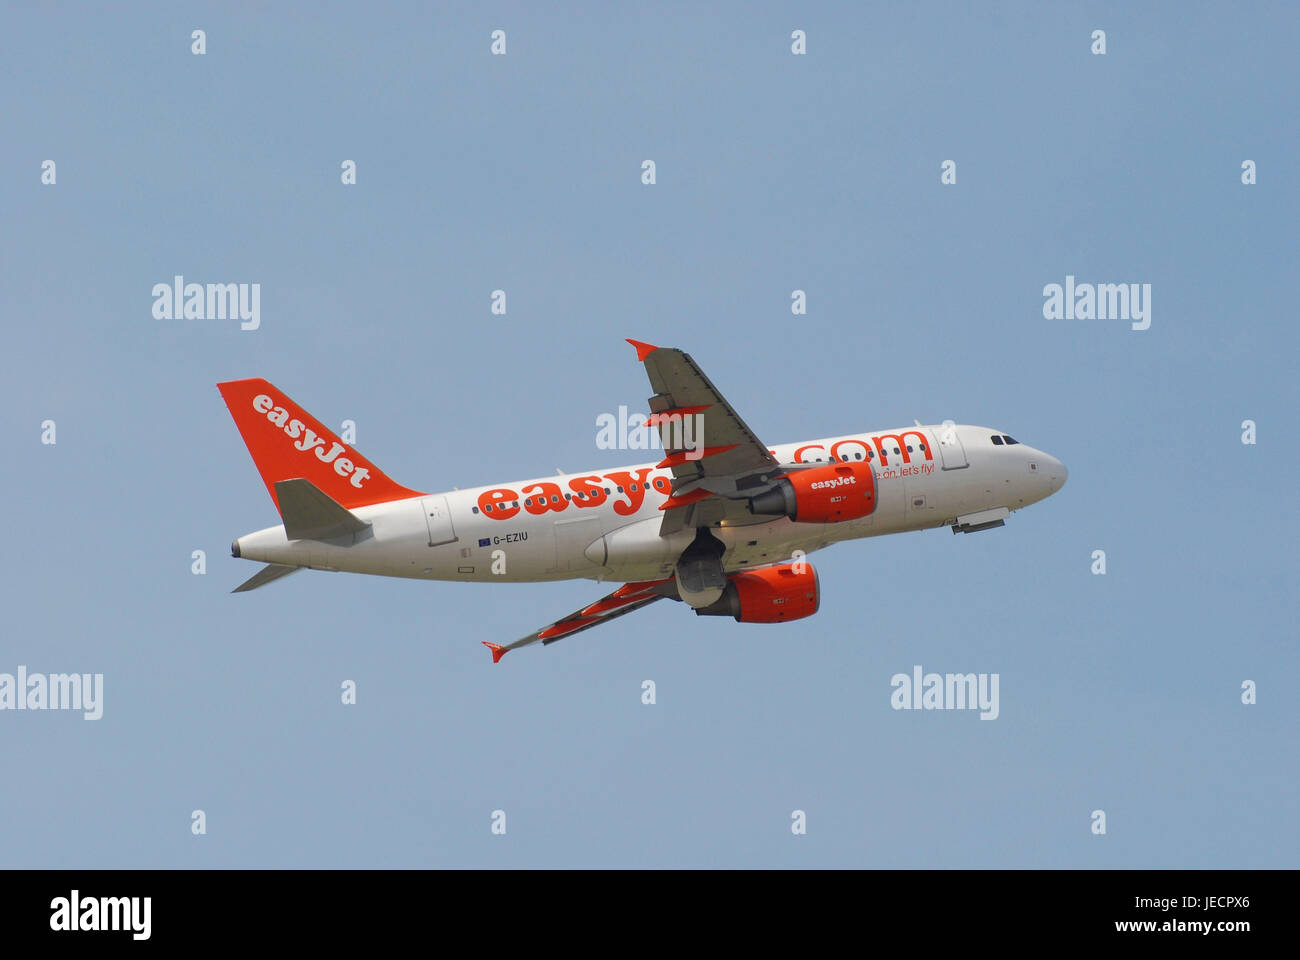 Air liner, airbus A319, easy jet, flight, no property release, civil aviation, airplane, traffic airplane, standard - Stock Image